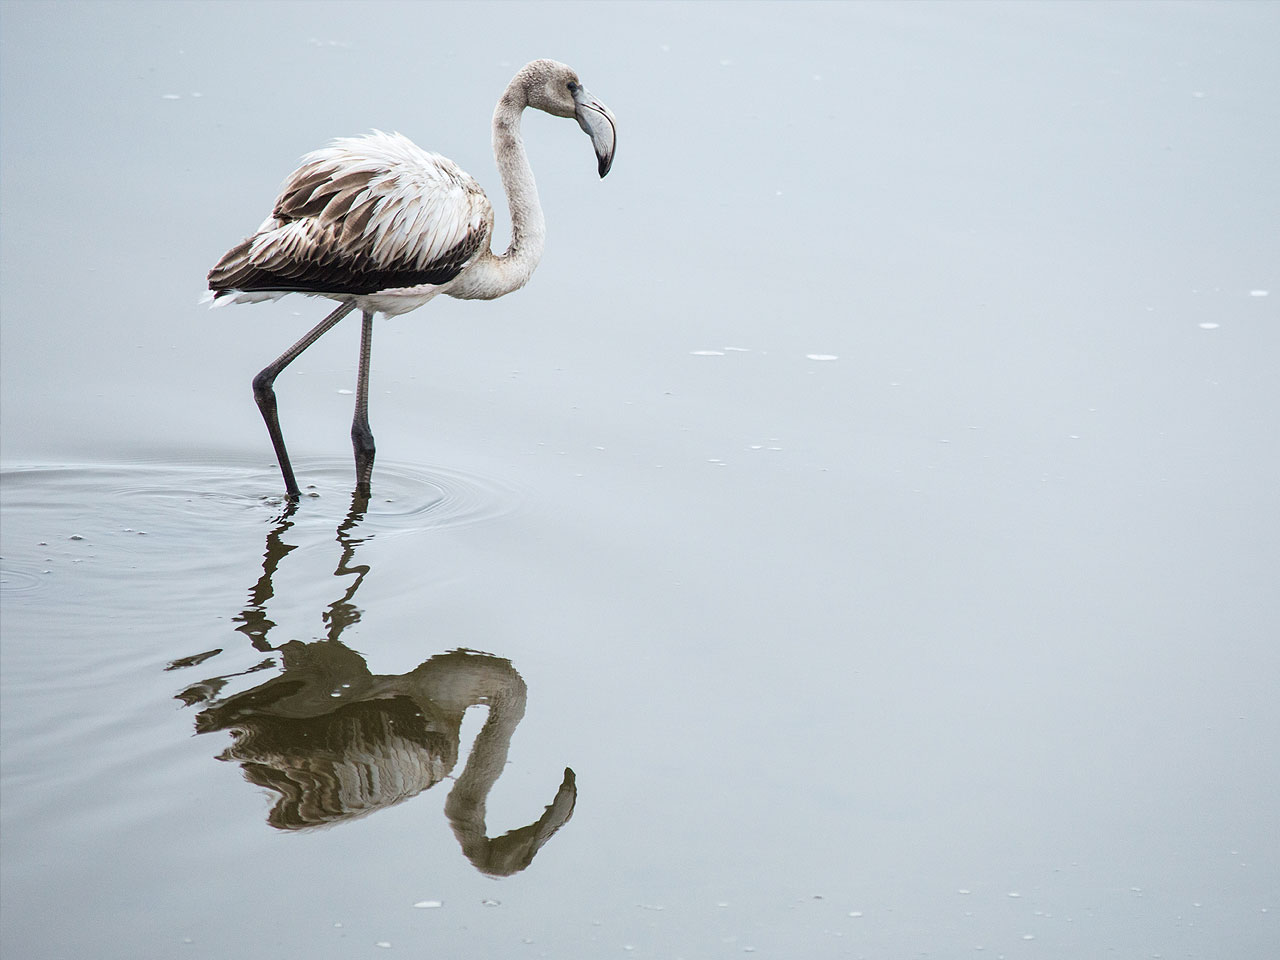 A flamingo and its reflection in the water.